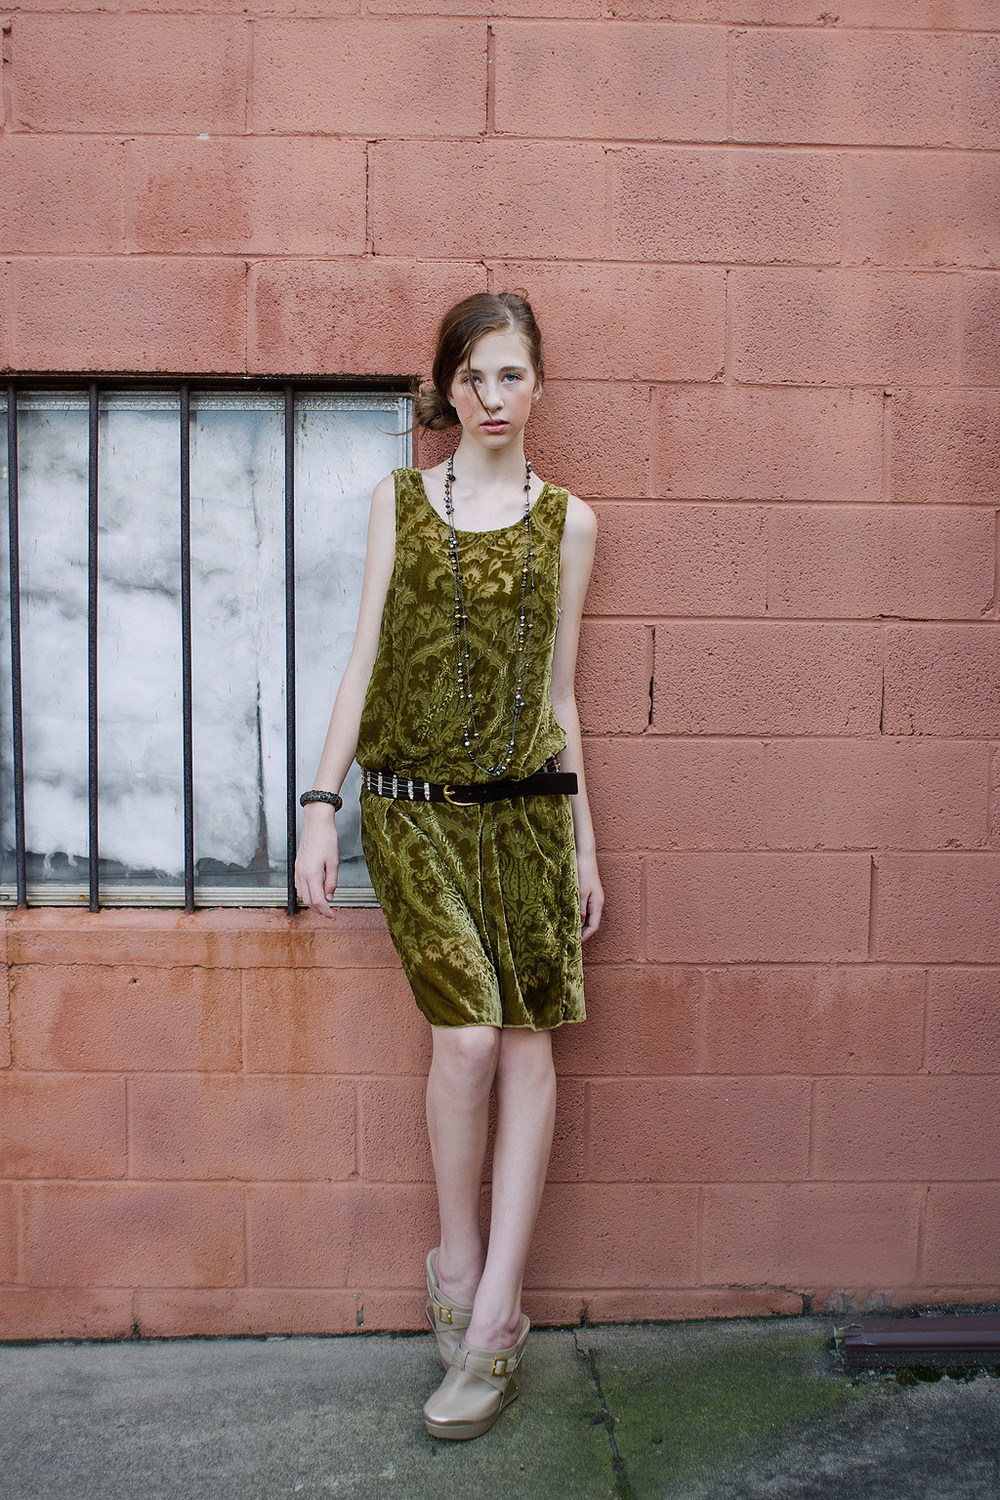 Maelyn Green Dress Full length_Cece_web.jpg